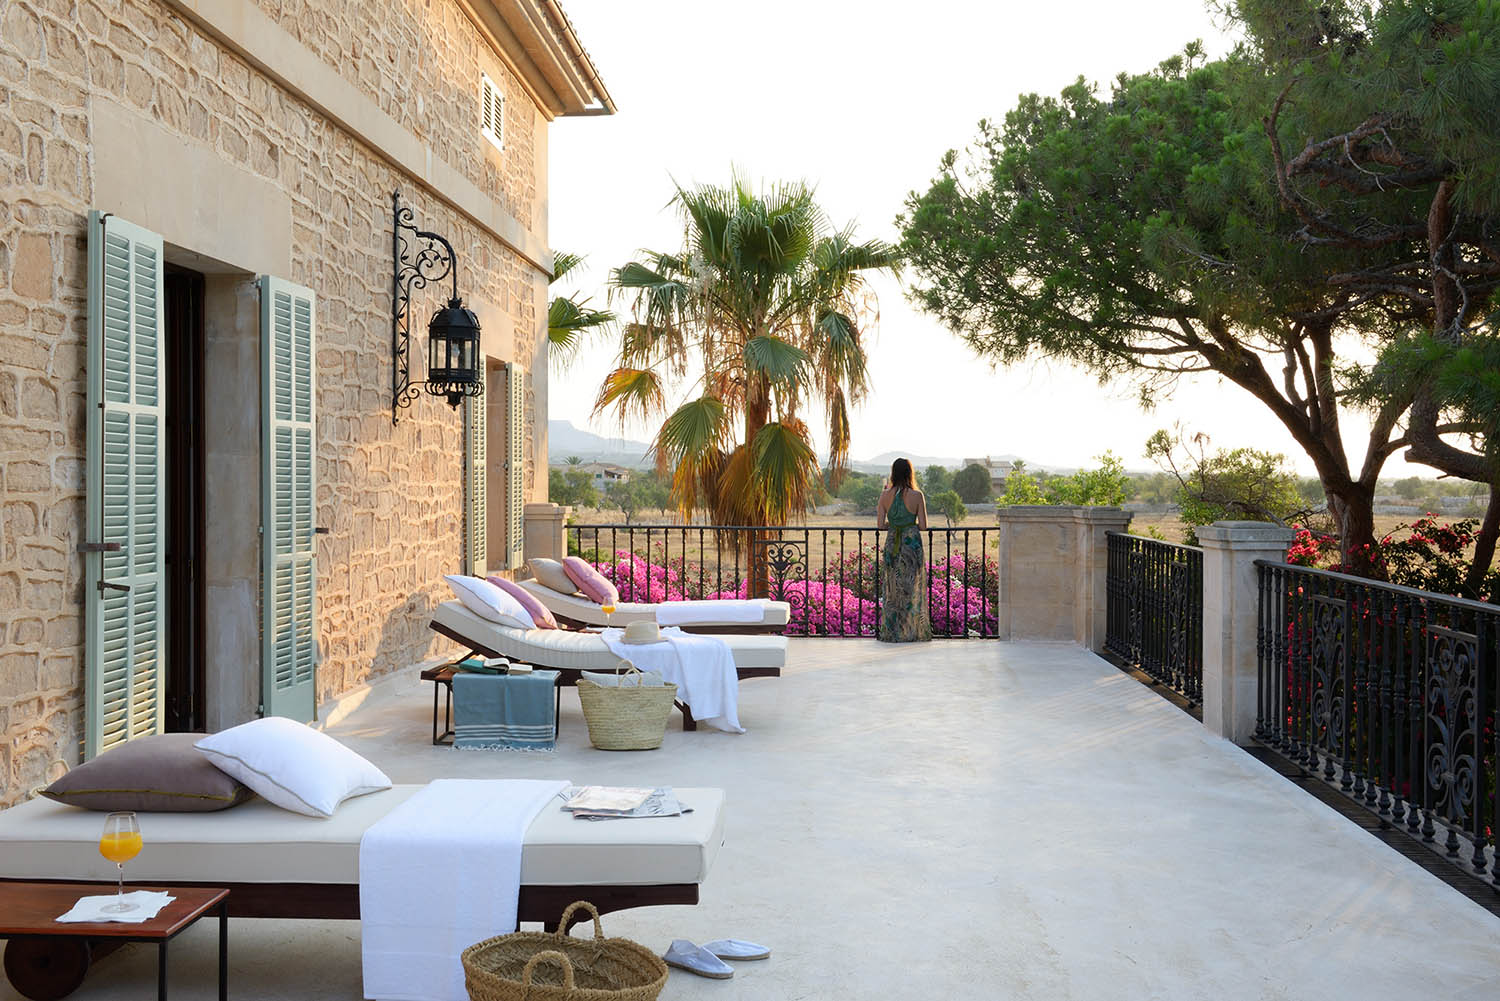 Cal reiet a new hotel in mallorca with great rooms for for Mallorca design hotel